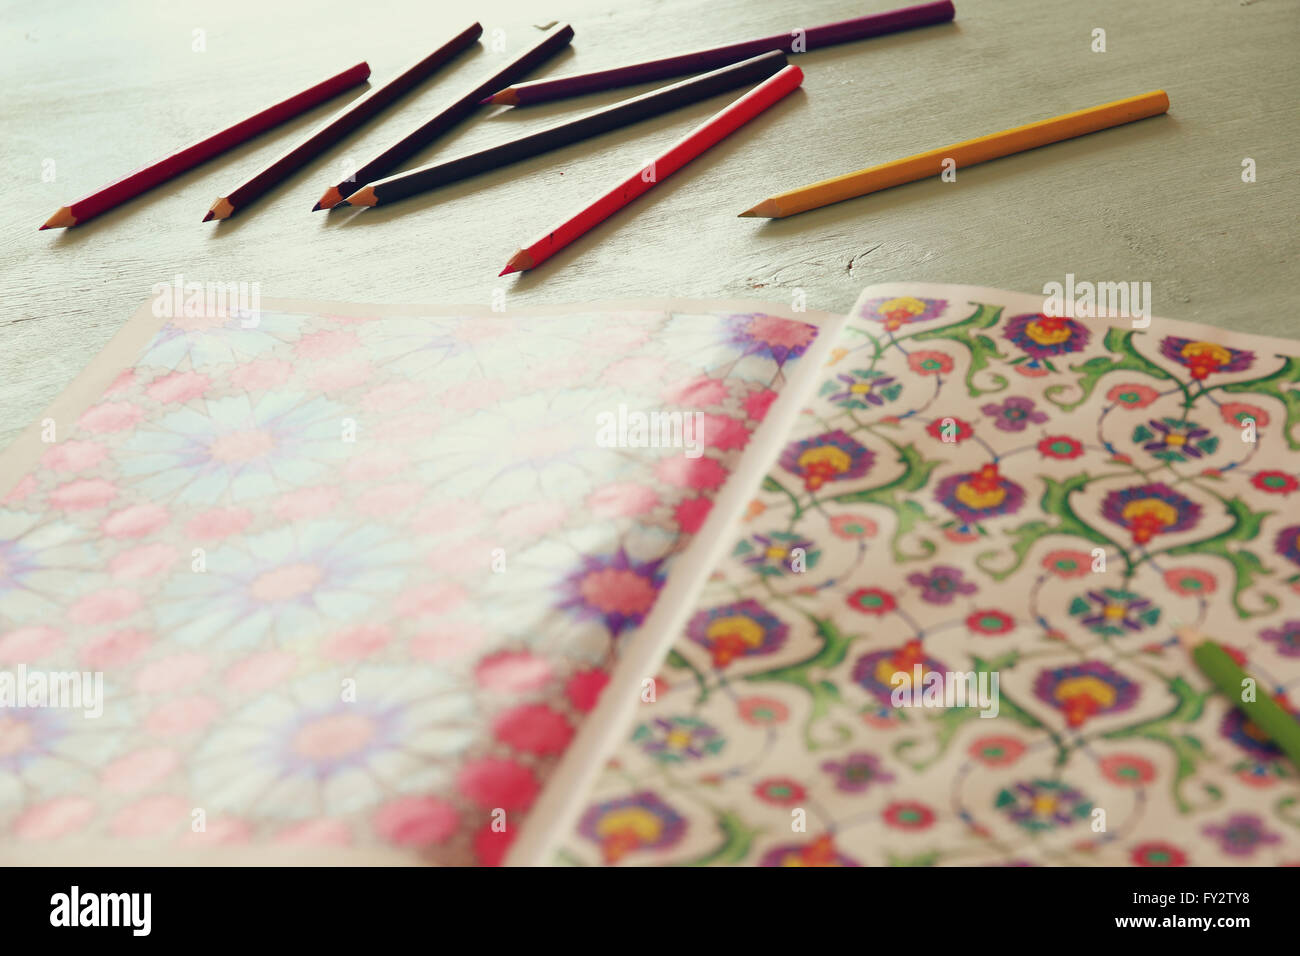 adult coloring book trend, for stress relief. top view. selective focus - Stock Image